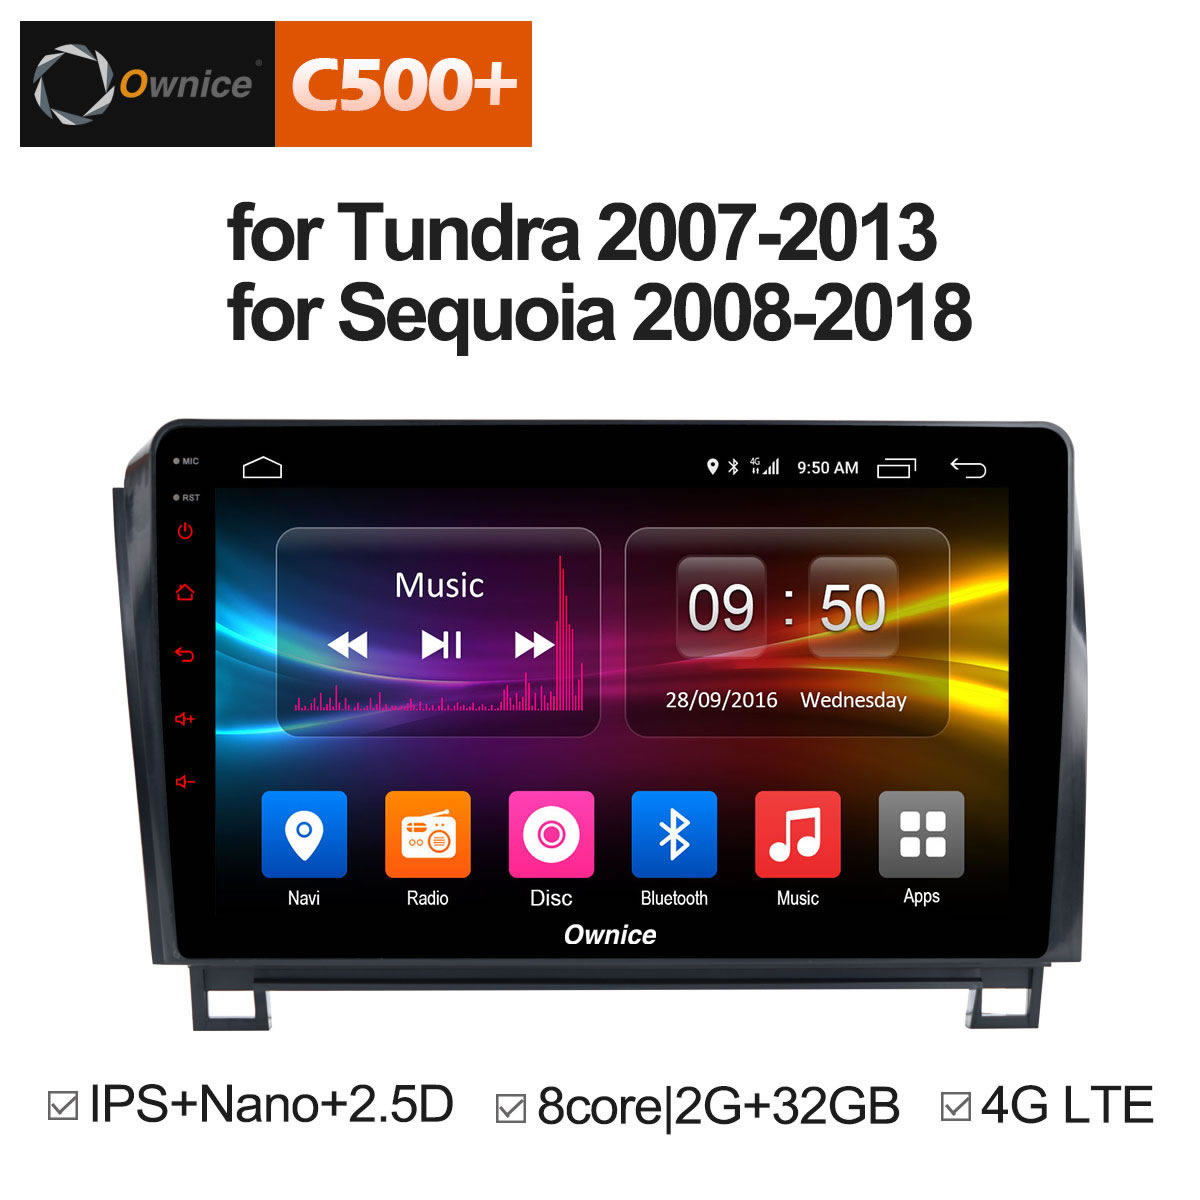 Ownice C500 + G10 Android 8.1 8 Core Voiture DVD GPS Pour Toyota Tundra 2007-2013 Sequoia 2008- 2018 Stéréo Radio Audio 4g OBD DVR